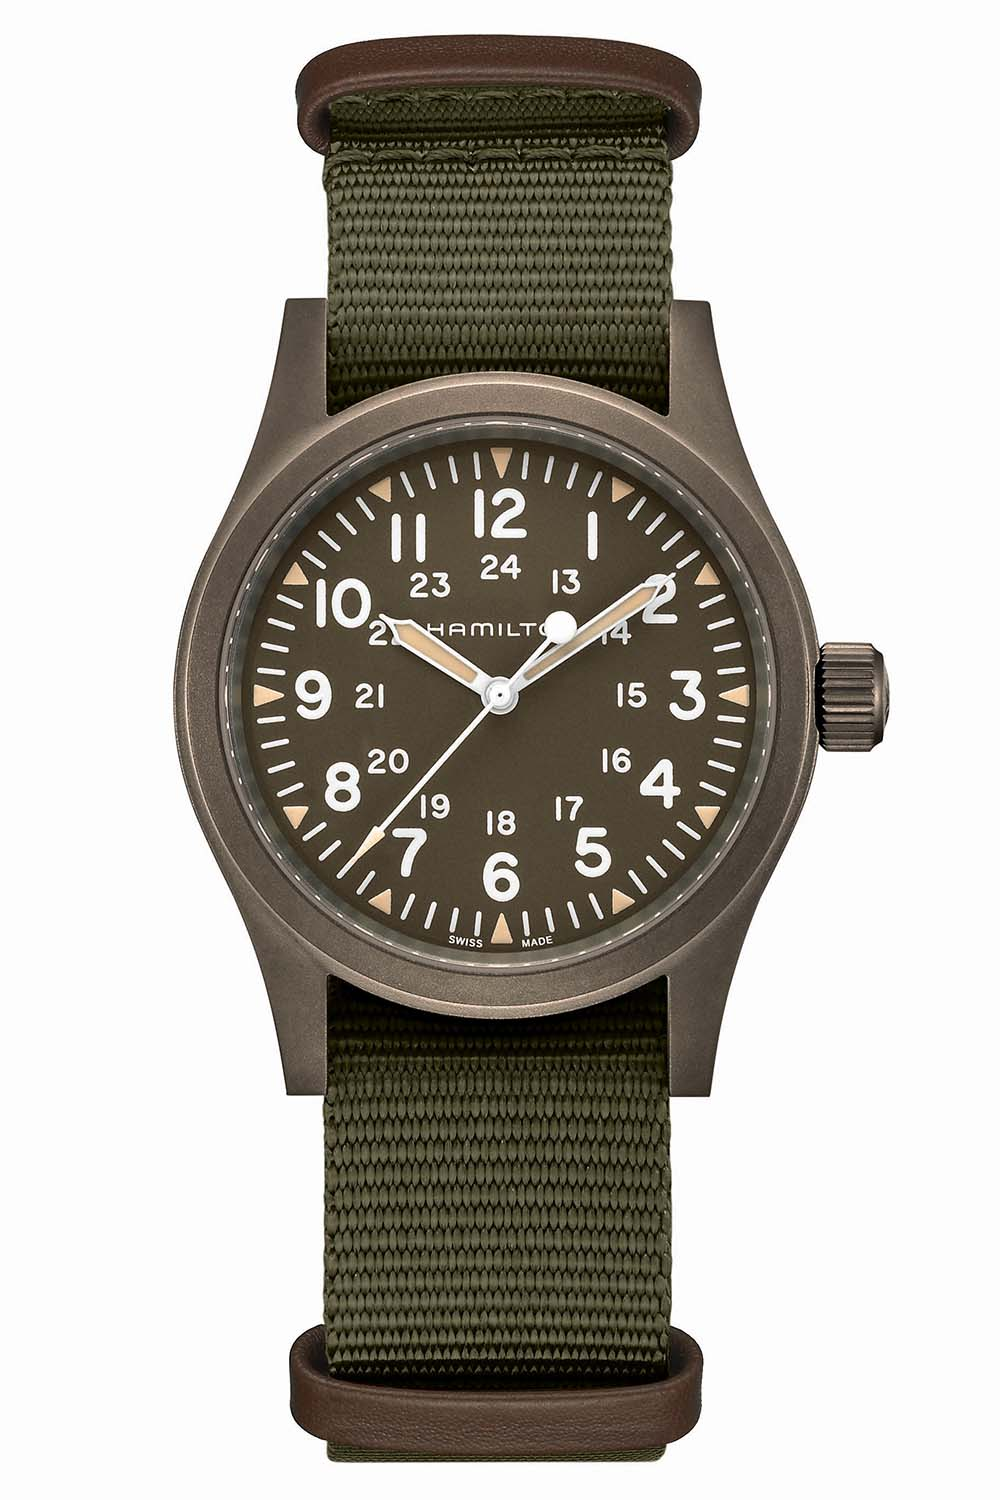 Hamilton Khaki Field Mechanical 2019 - 10